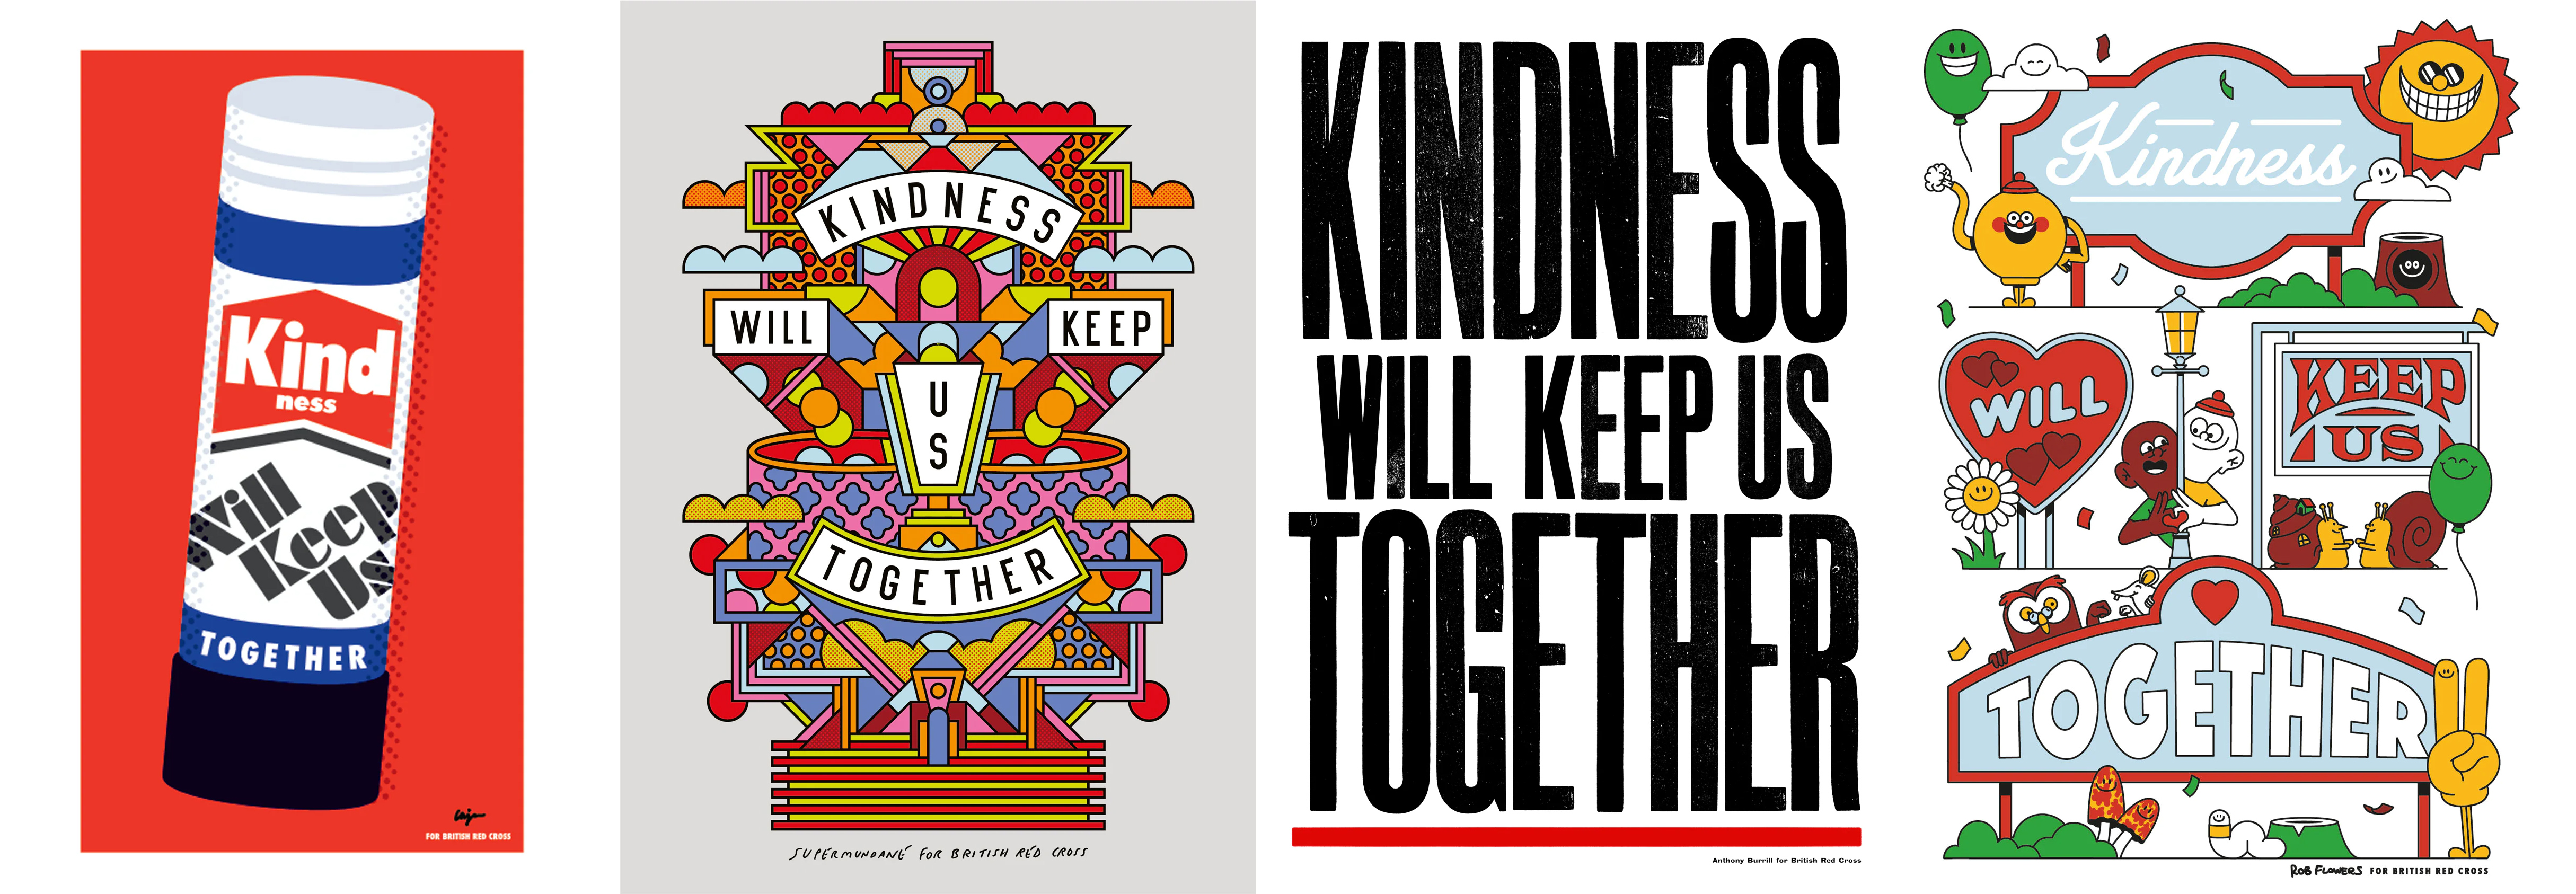 """British Red Cross """"Kindness will keep us together"""""""